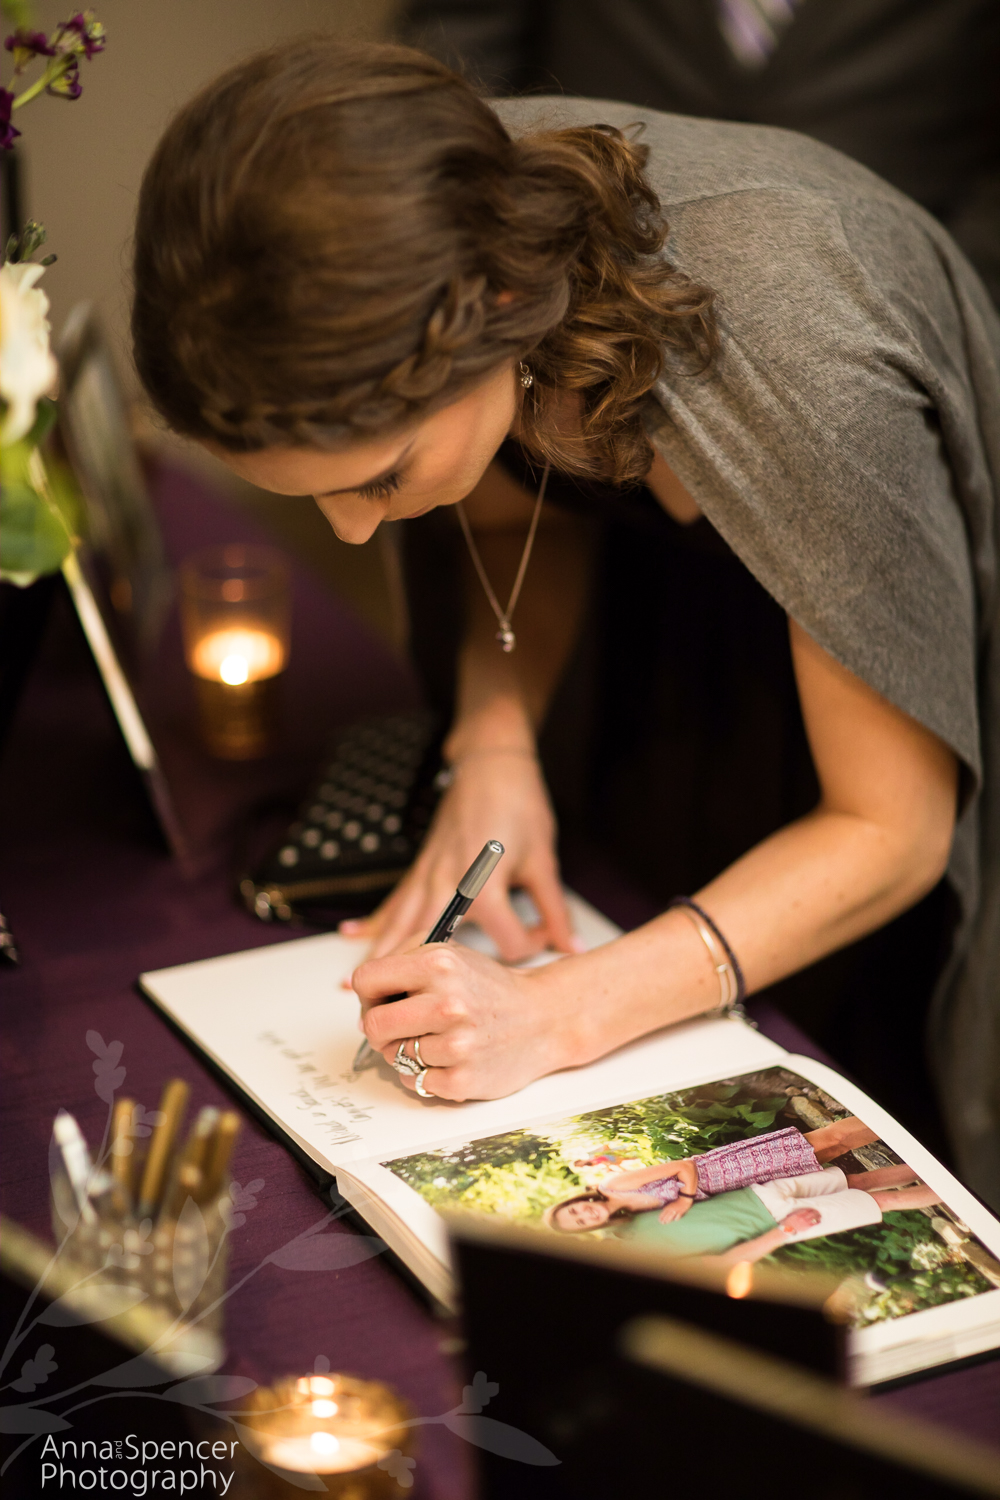 Signing the guestbook